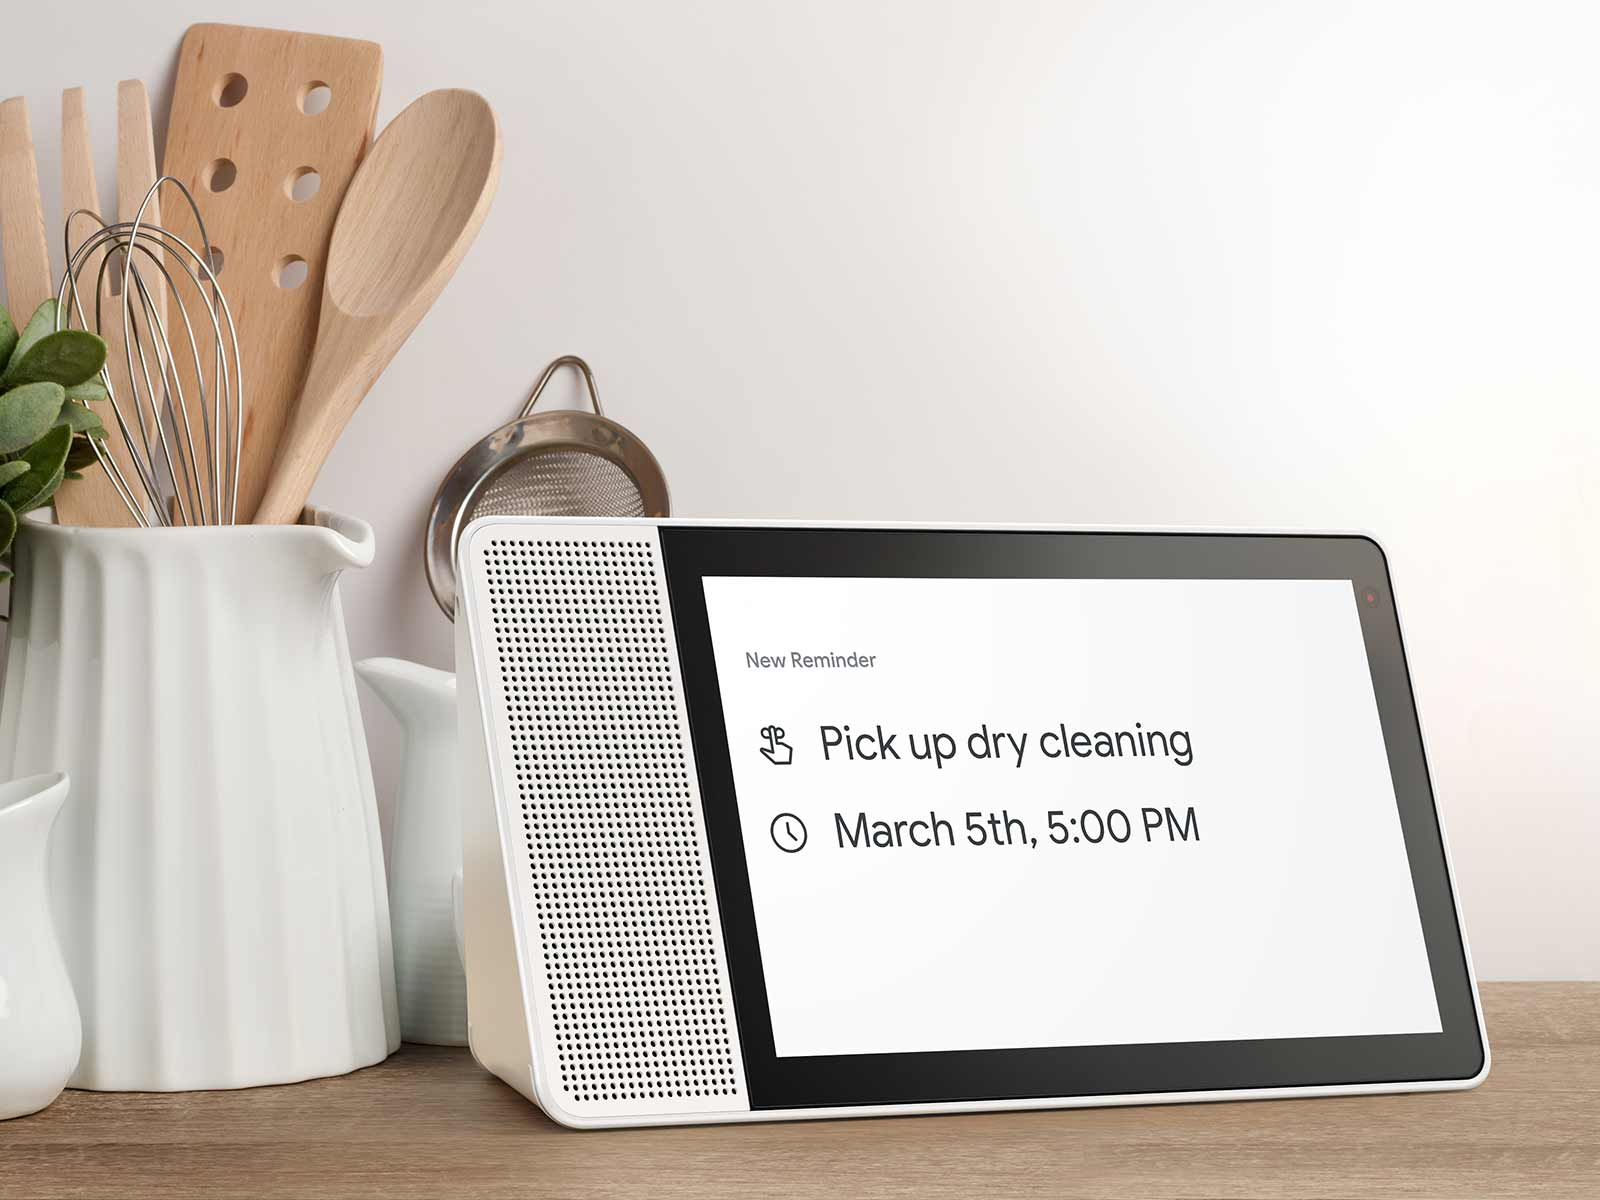 A Lenovo Smart Home System demonstrating the reminder feature of Google Assistant.